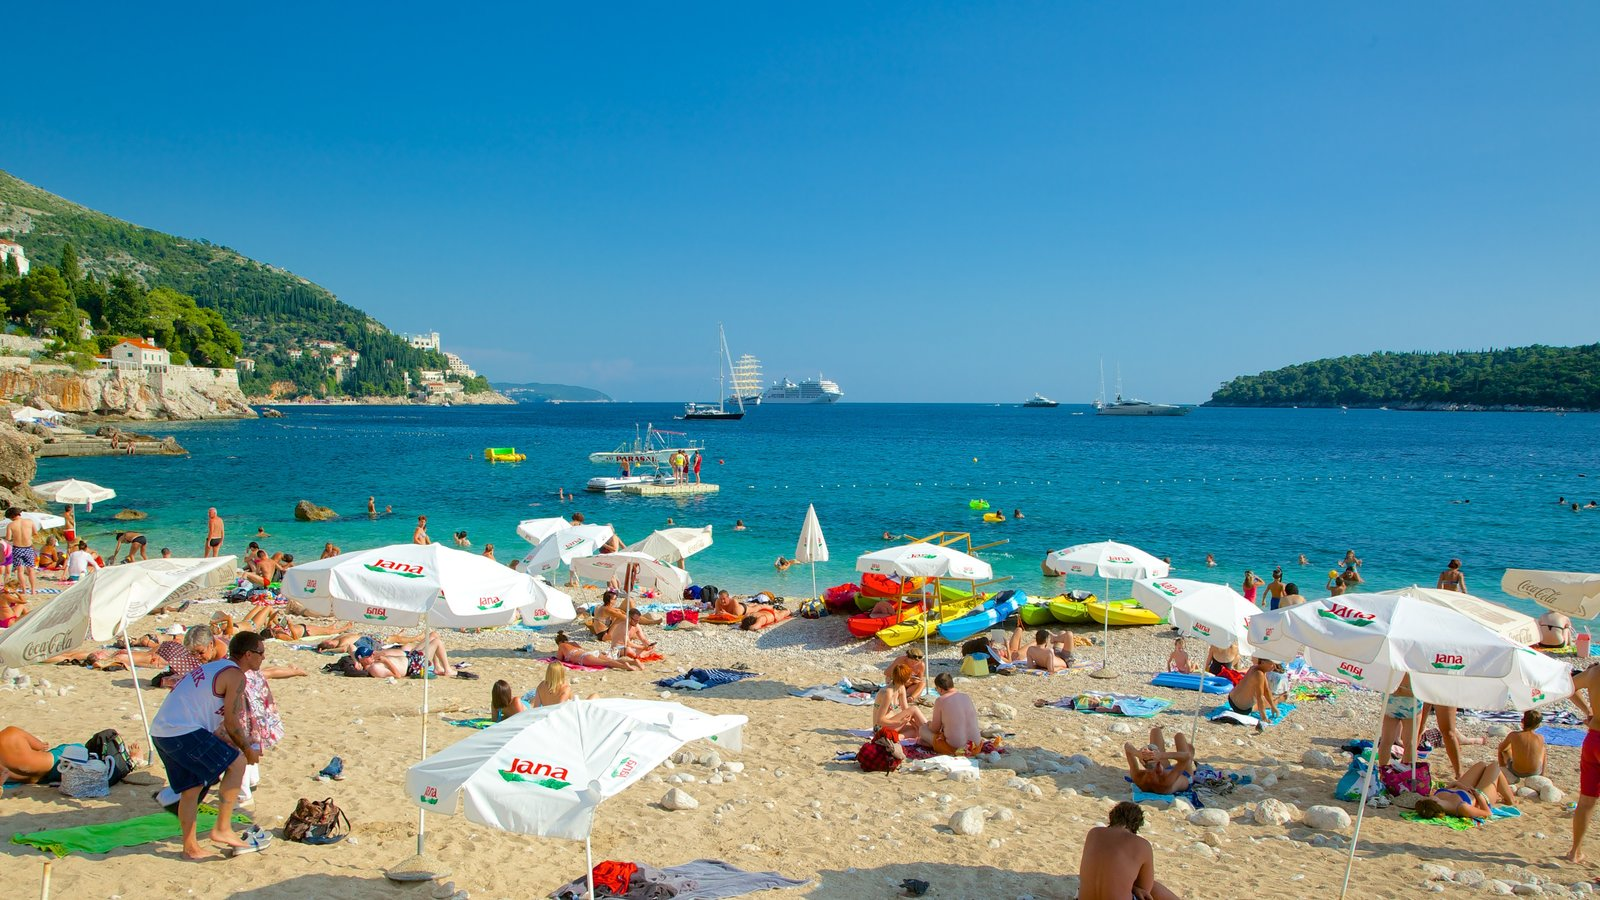 Banje Beach featuring a beach as well as a large group of people